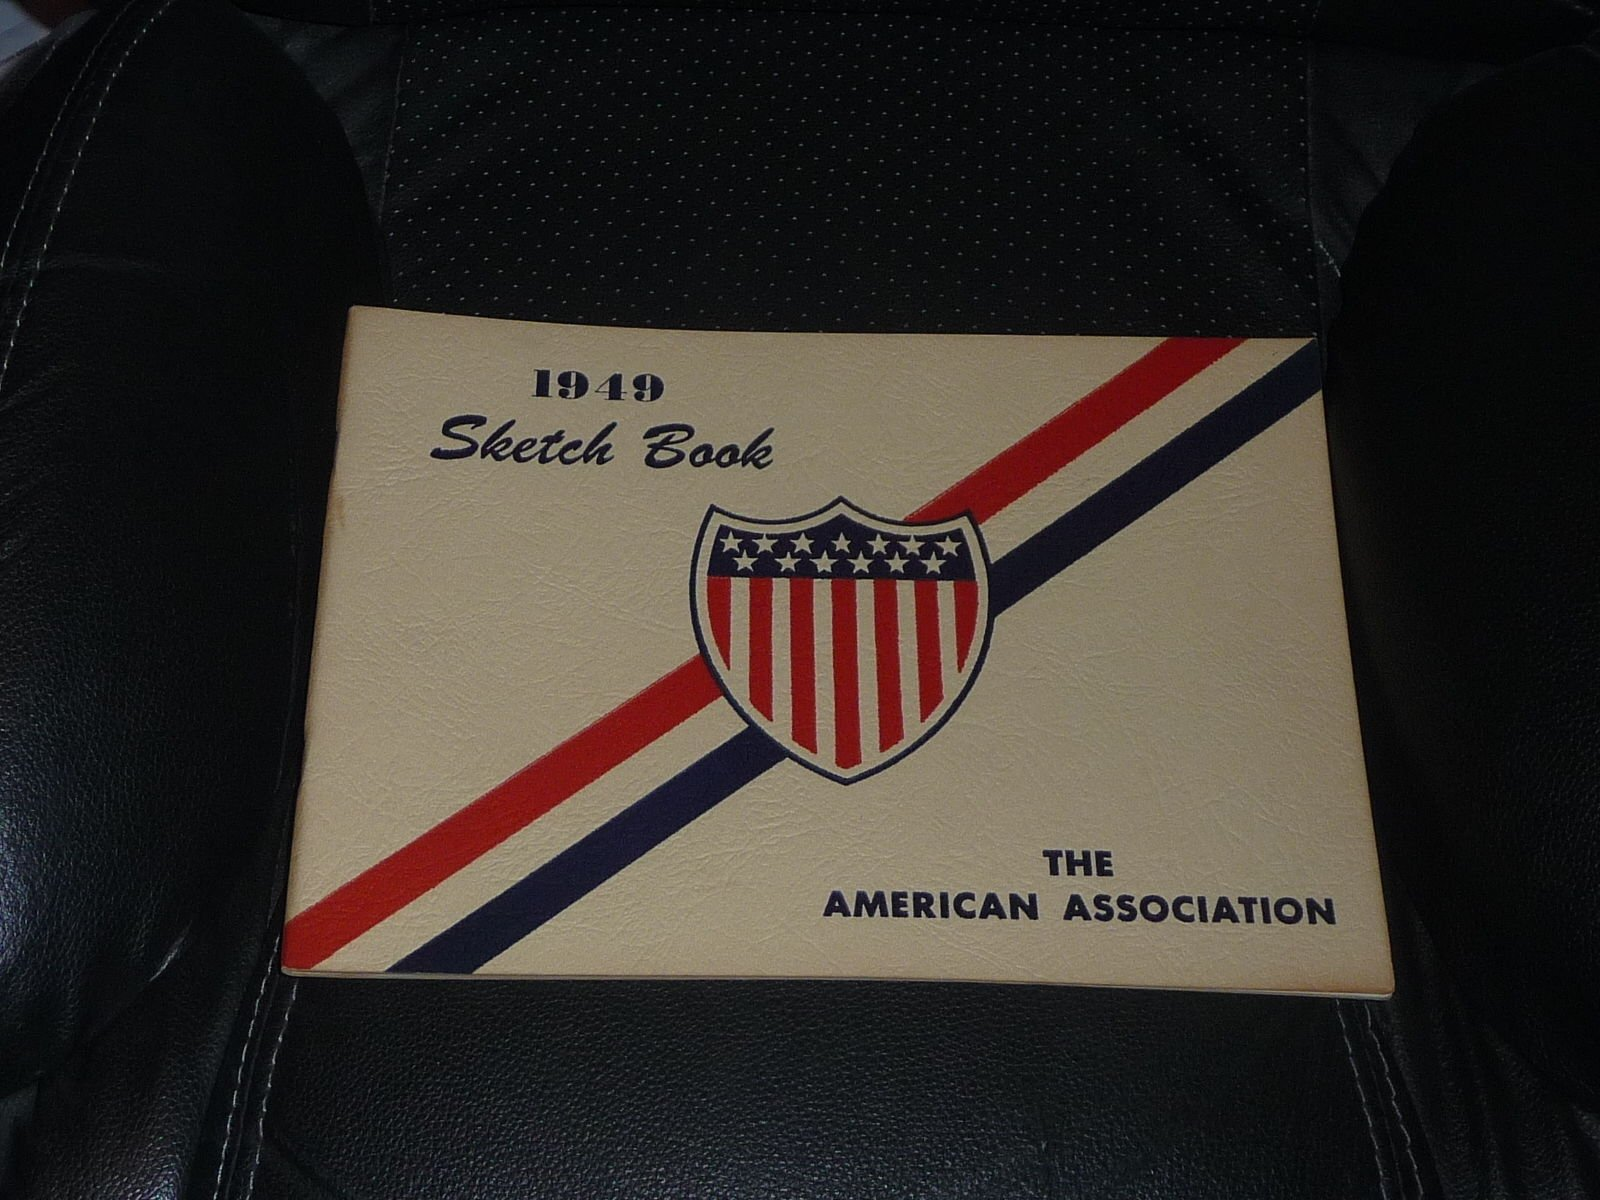 1949 AMERICAN ASSOCIATION MINOR LEAGUE BASEBALL SKETCH BOOK YEARBOOK